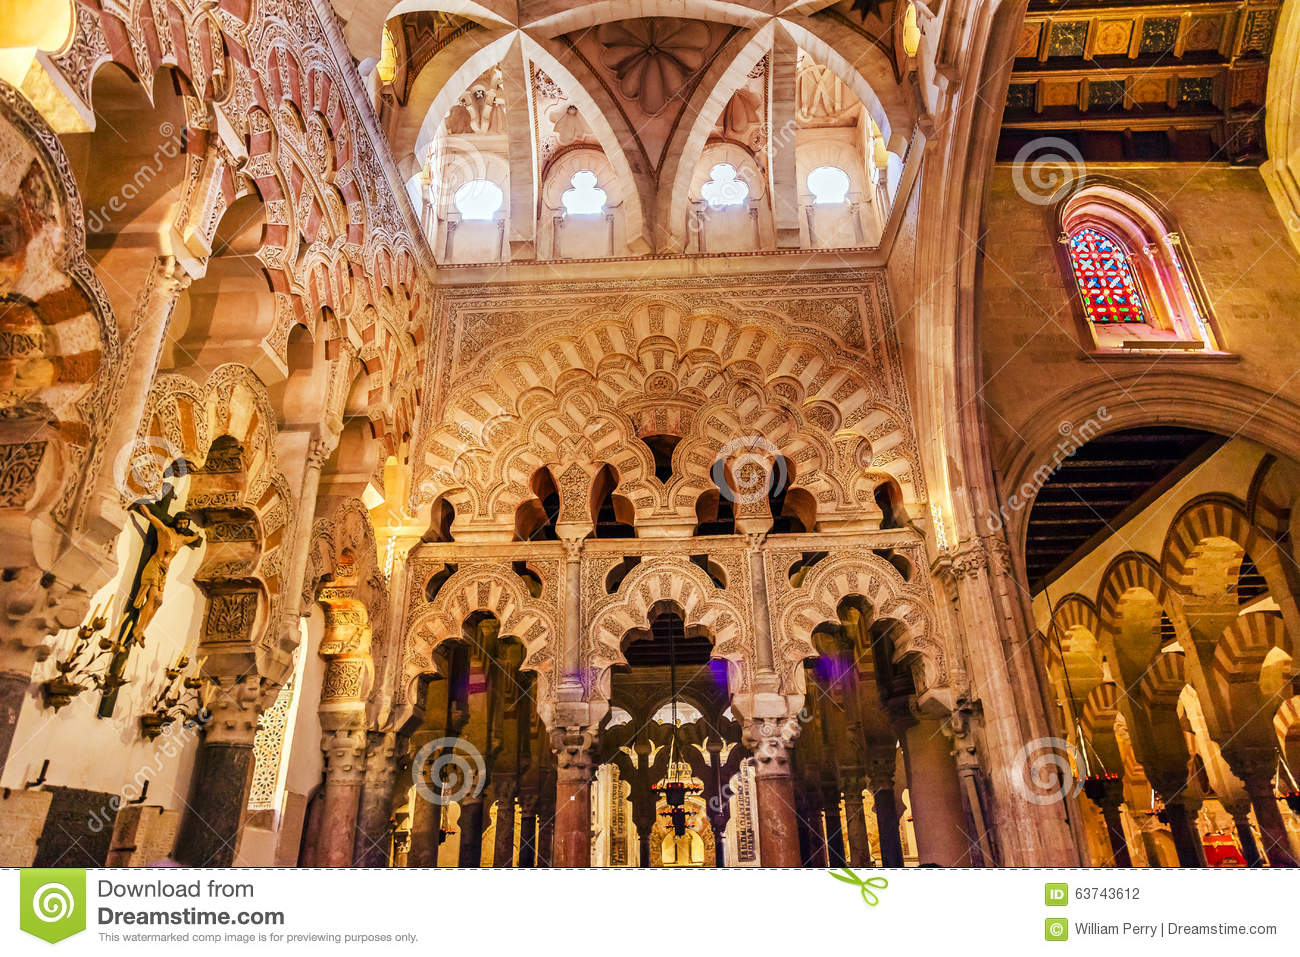 Download Capilla First Christian Chapel Arches Mezquita Cordoba Spain Stock Photo - Image of craftmenship, europe: 63743612